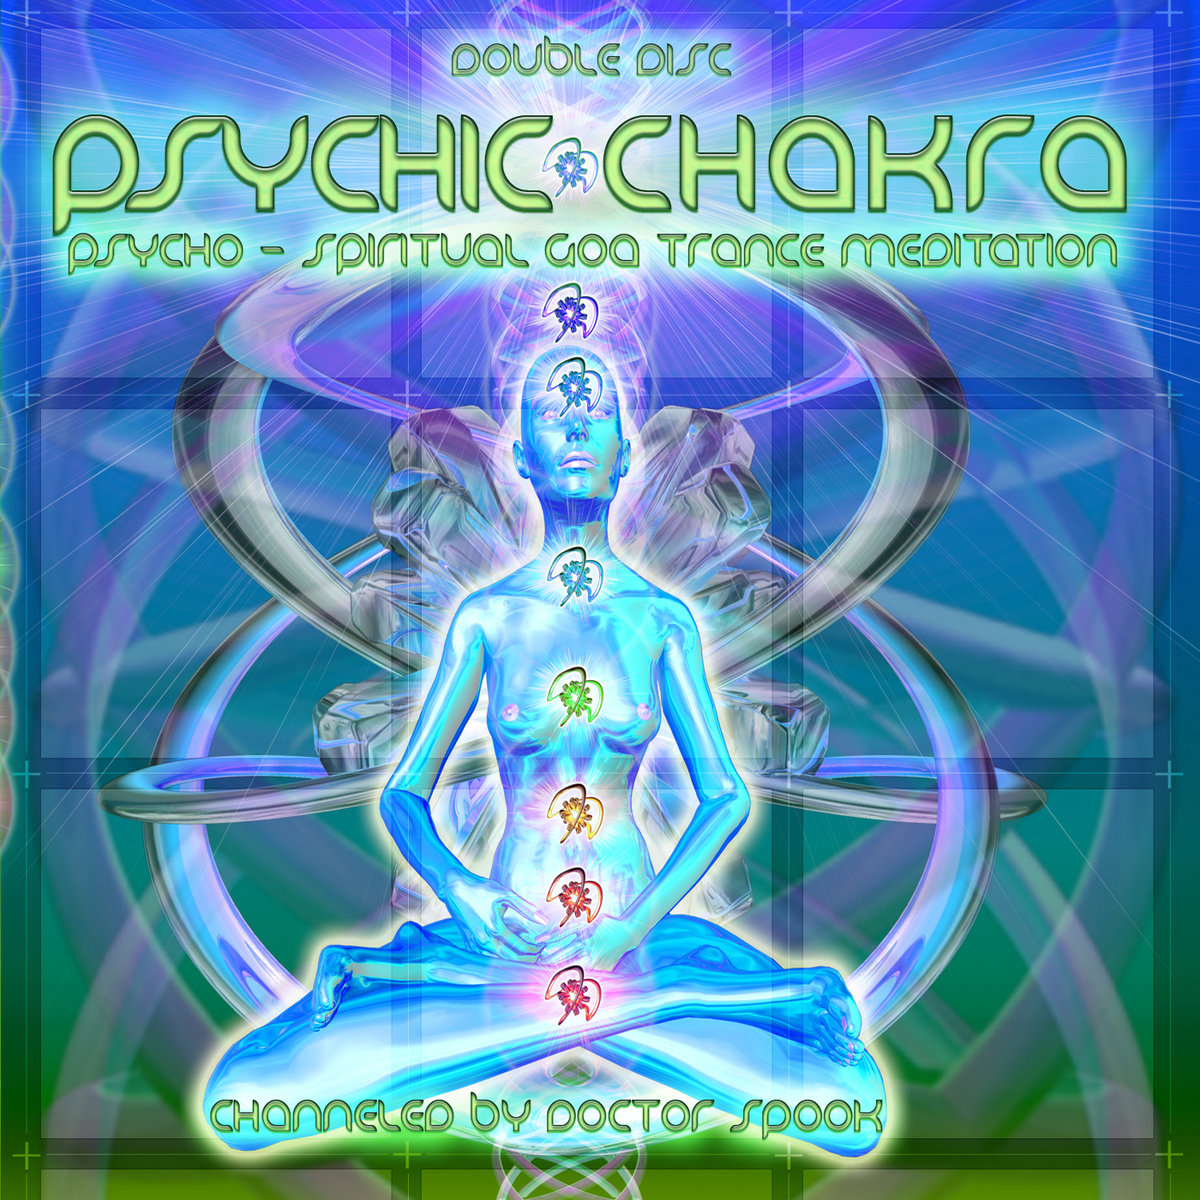 A.X.L. - Are You Ready @ 'Various Artists - Psychic Chakra (Channeled by Dr. Spook)' album (electronic, psychic chakra)